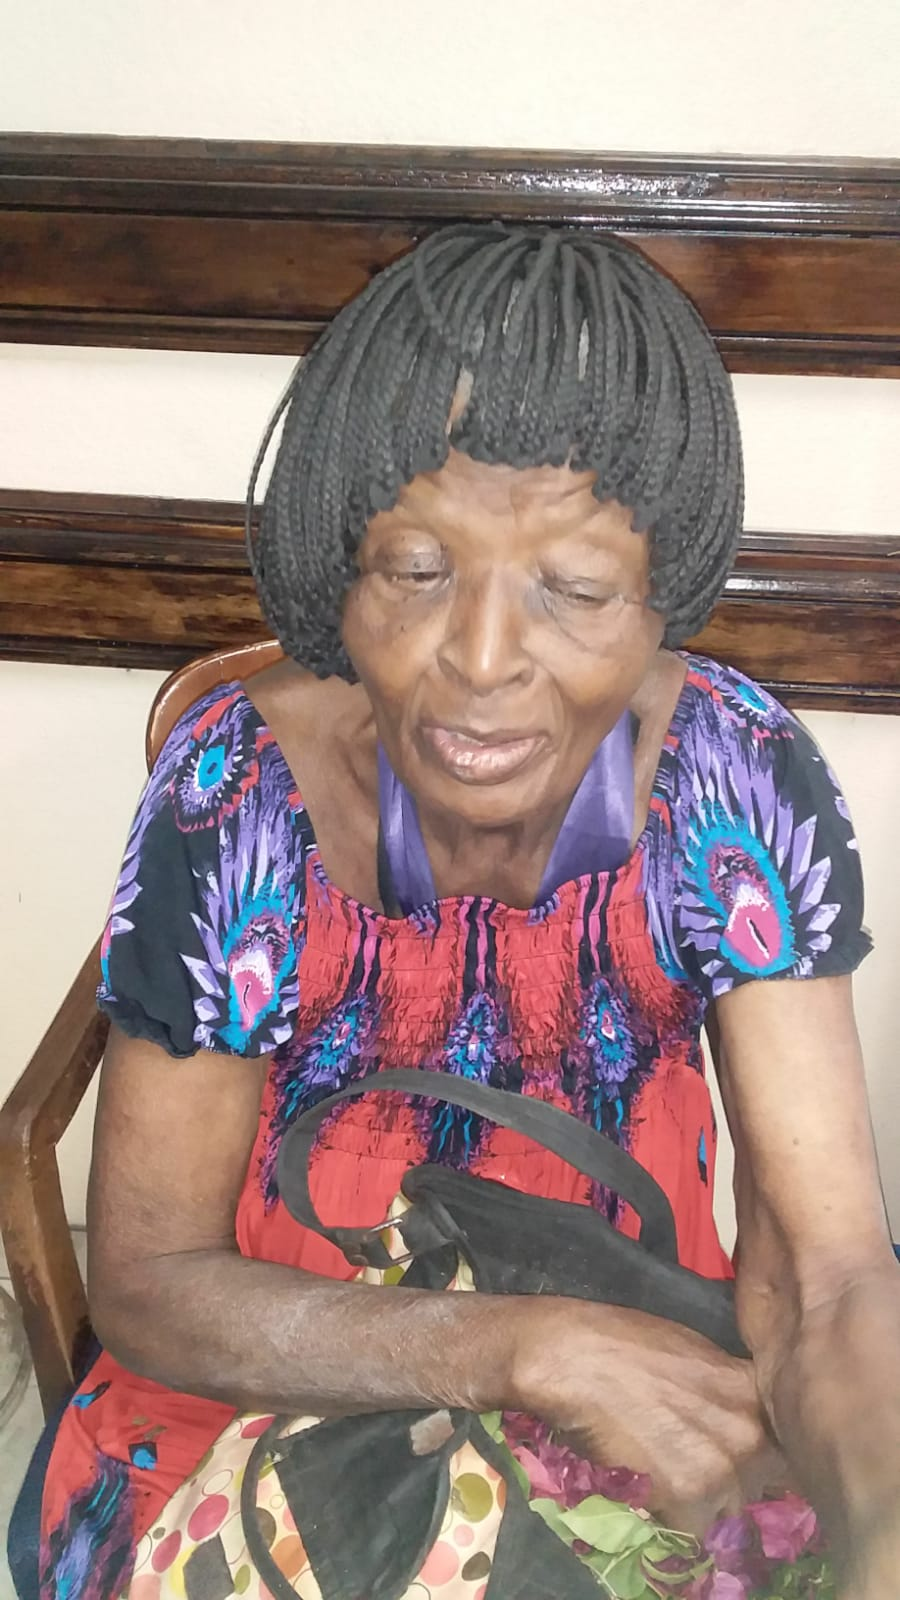 Police seek relatives of elderly woman found with no memory